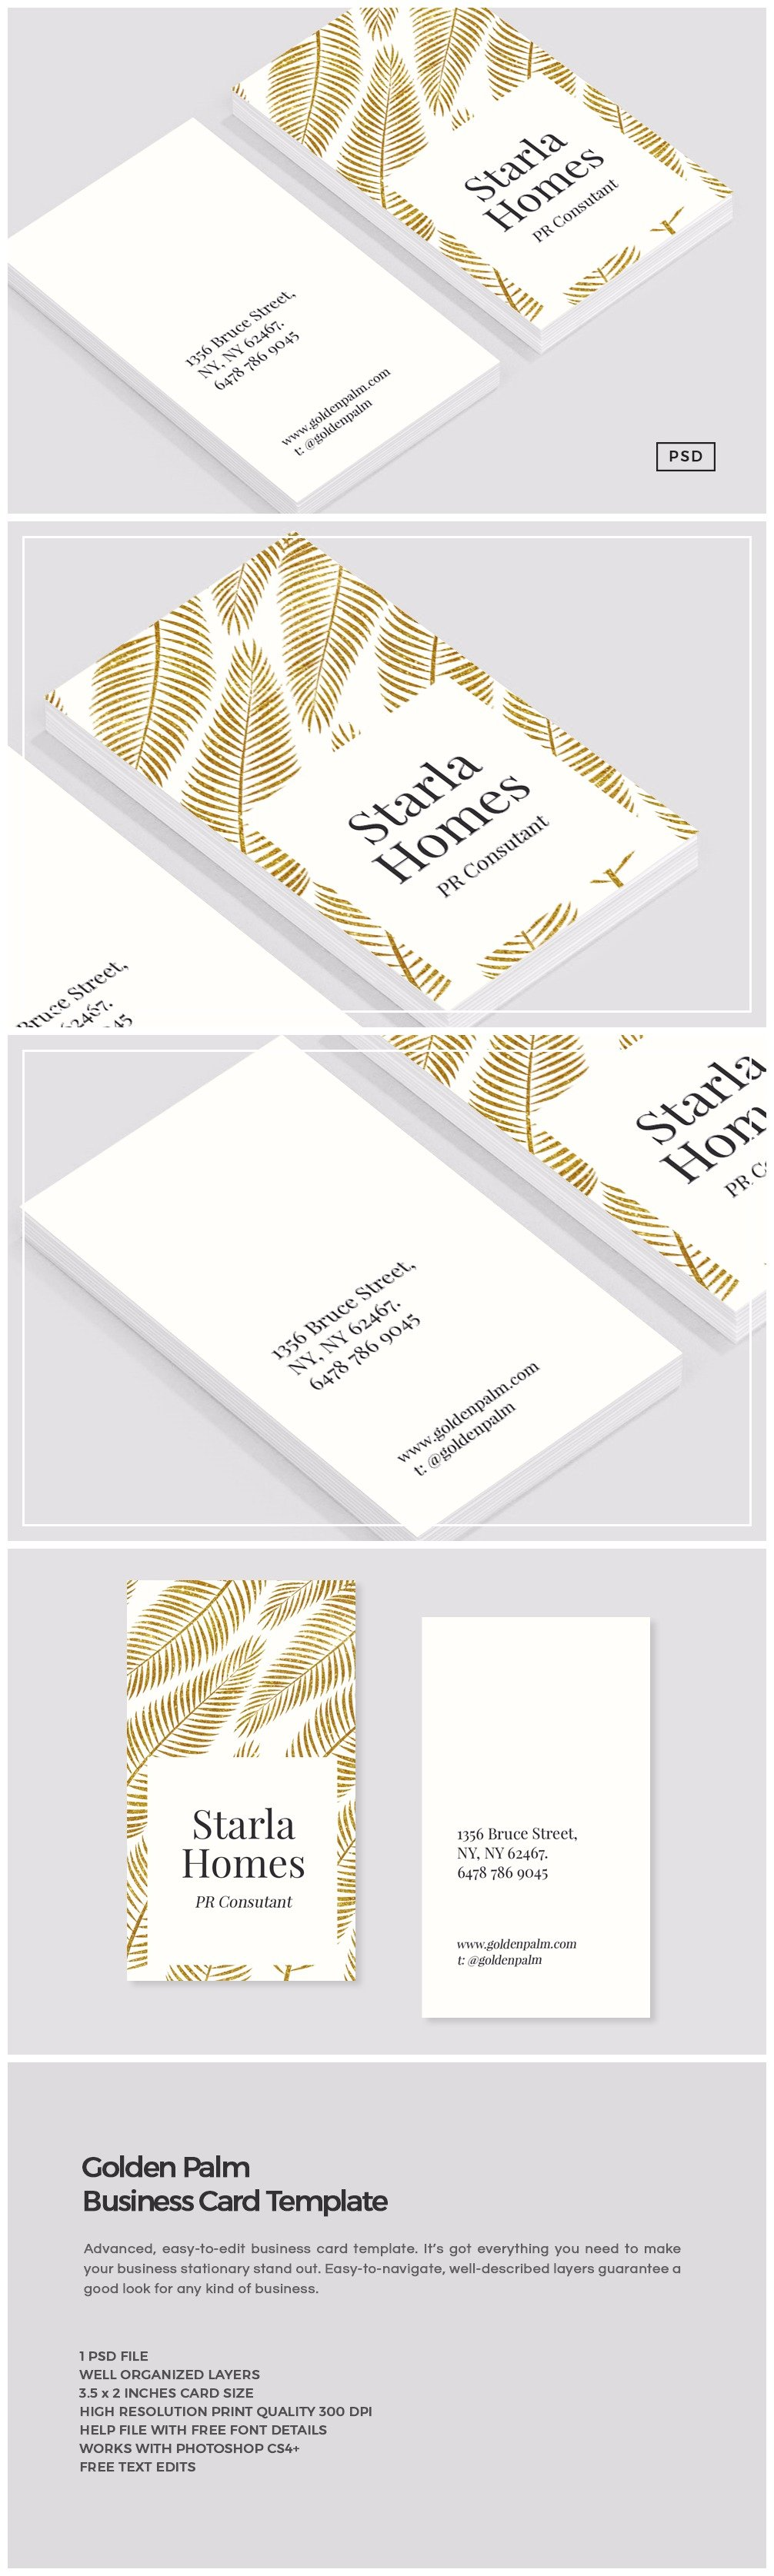 golden palm business card template business card templates